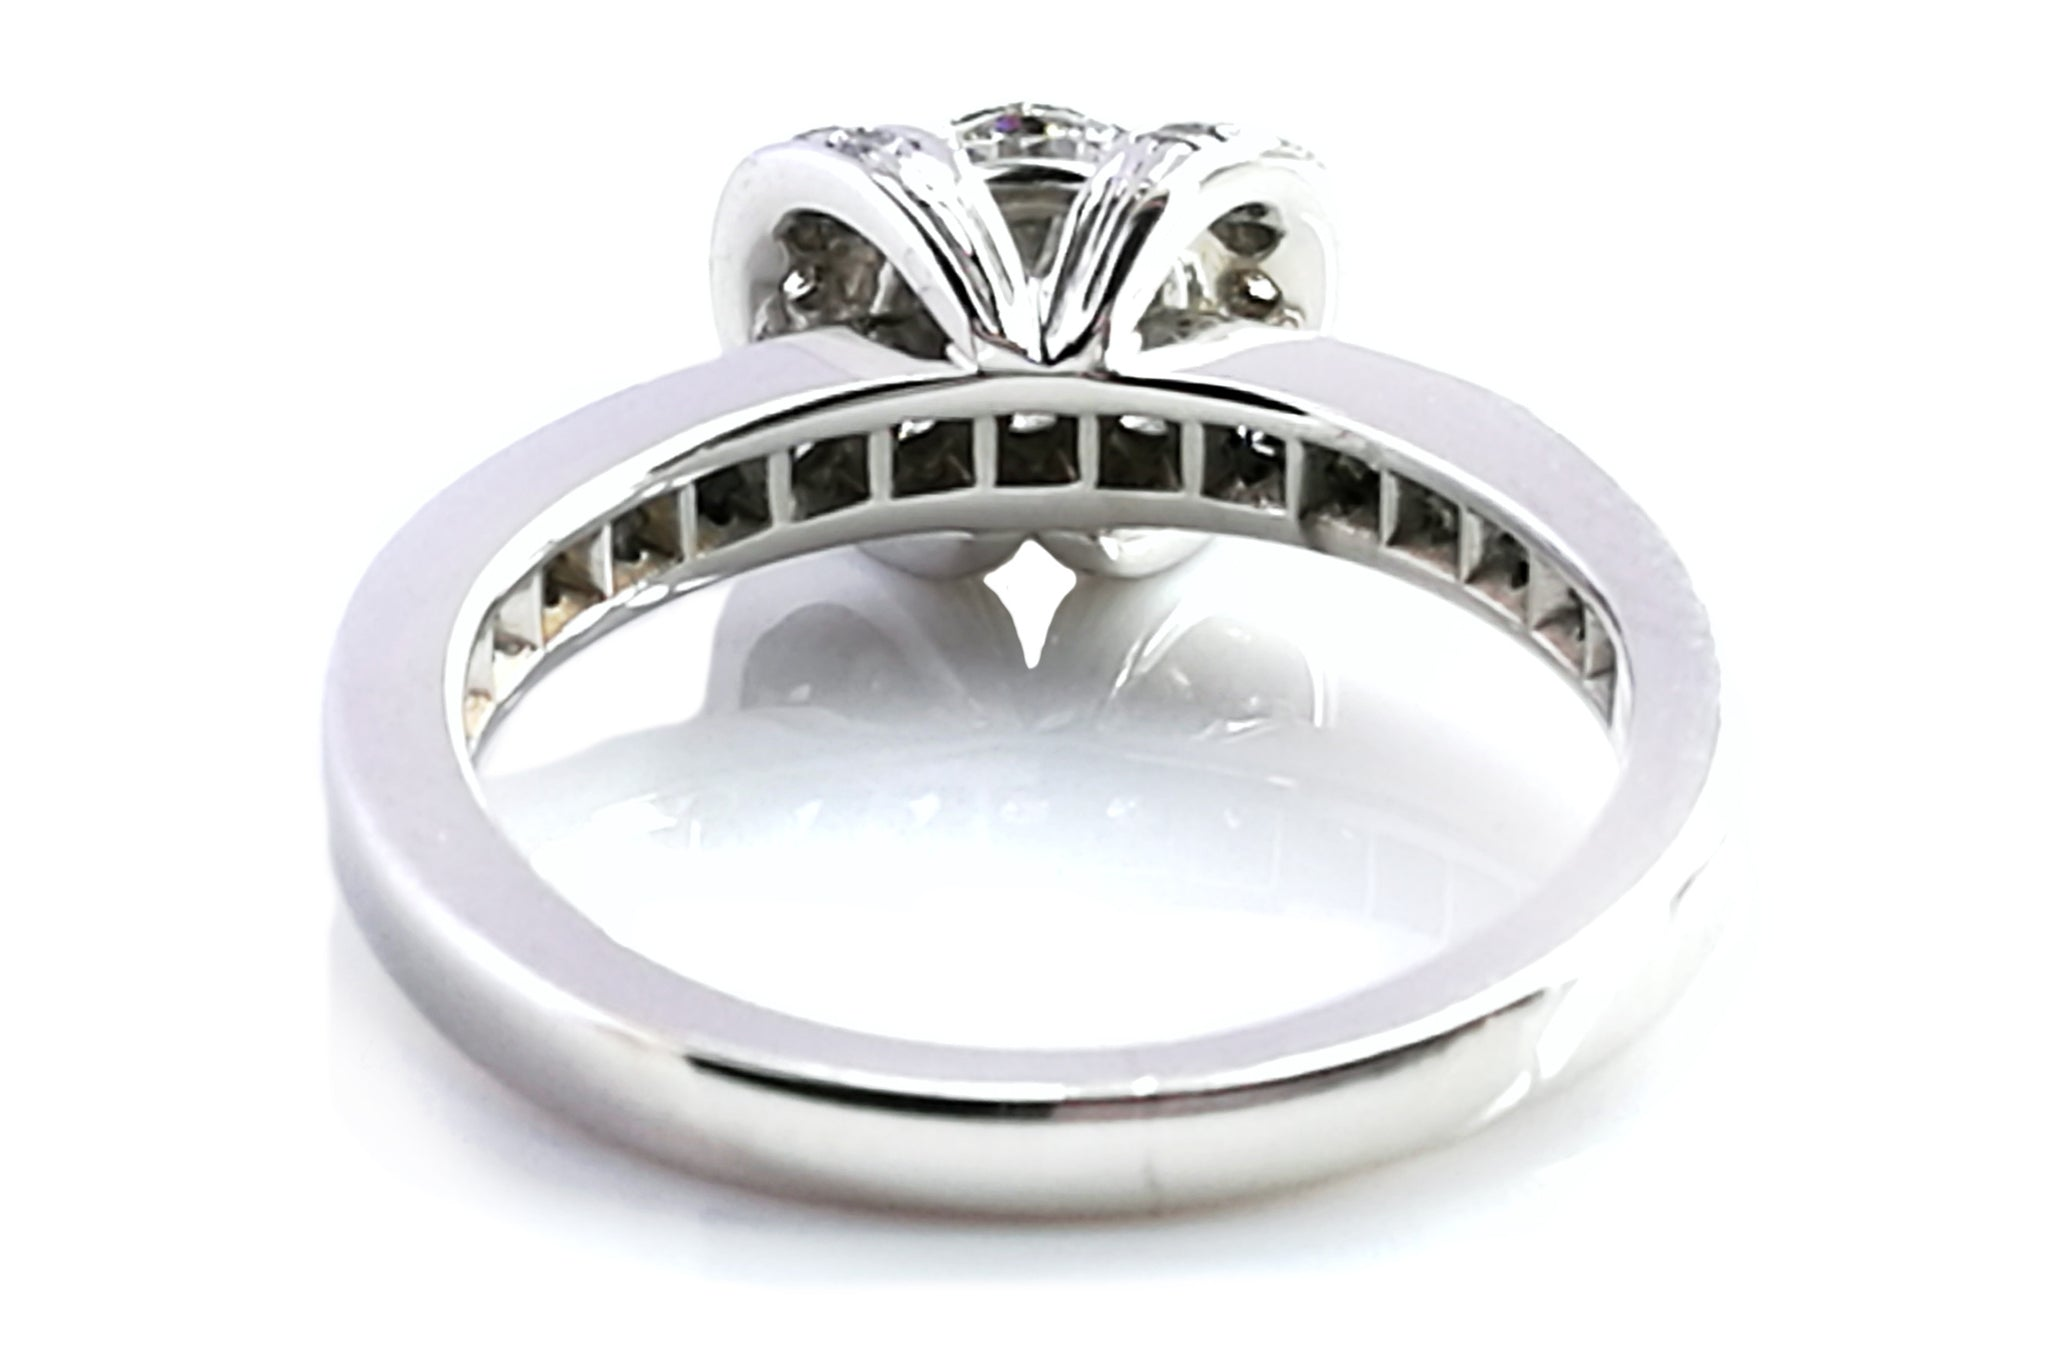 Tiffany & Co. 0.76tcw G/VVS1 Ribbon Triple X Round Brilliant Cut Diamond Engagement Ring